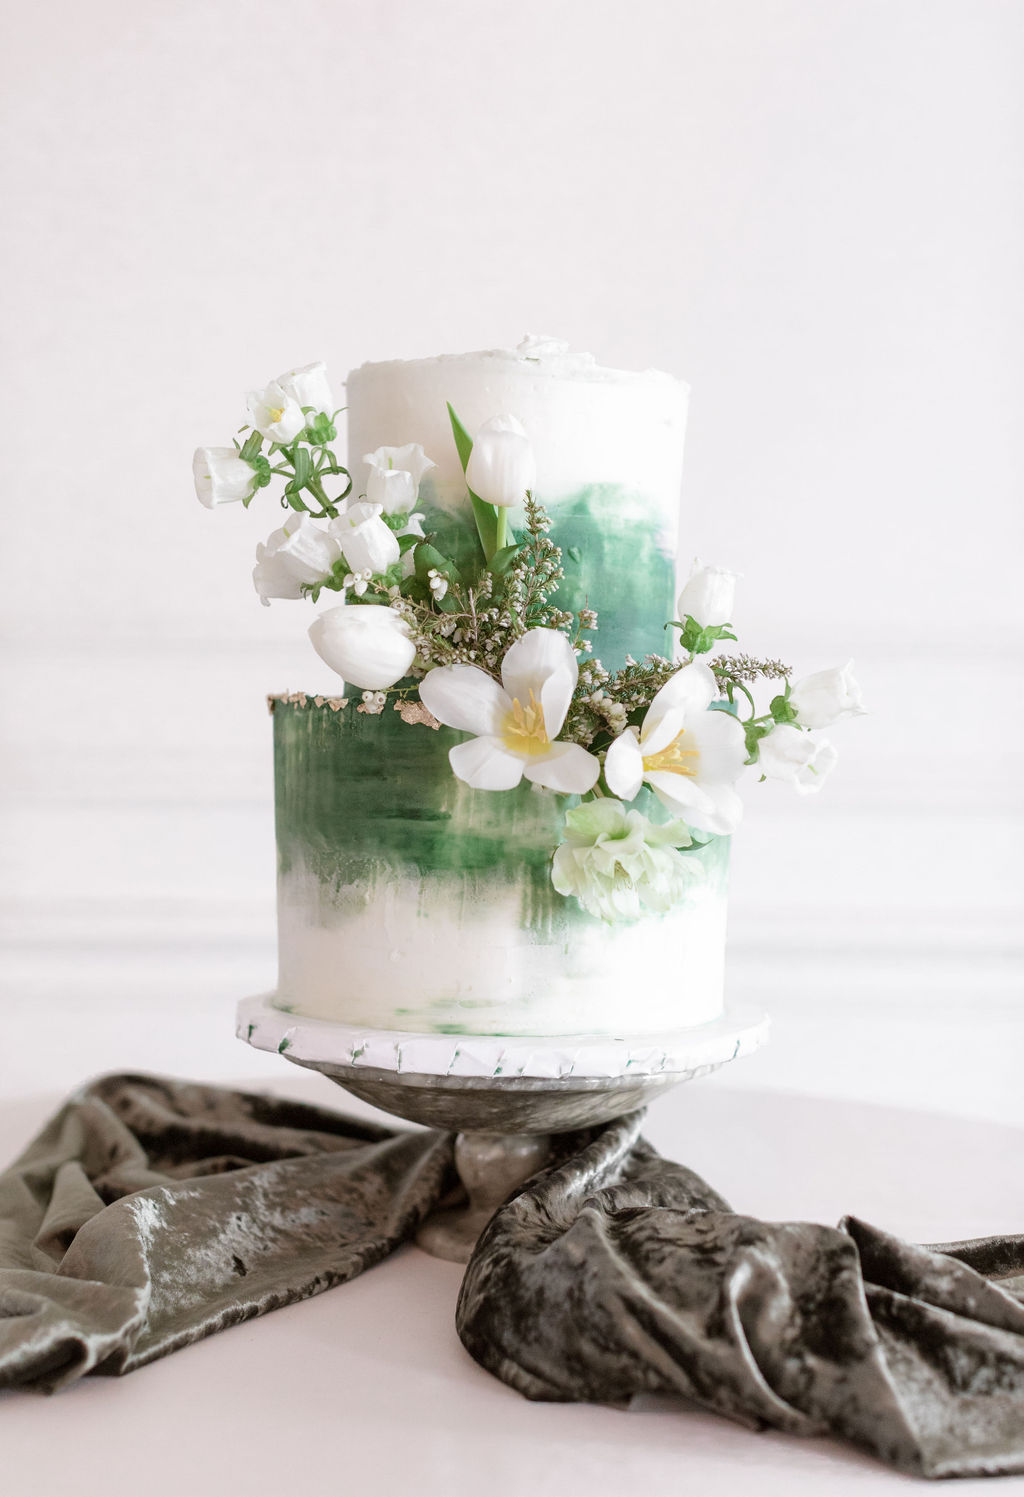 Butterfly Cakery greenery wedding cake: Elegant Dallas Wedding Inspiration at The Mason featured on Alexa Kay Events